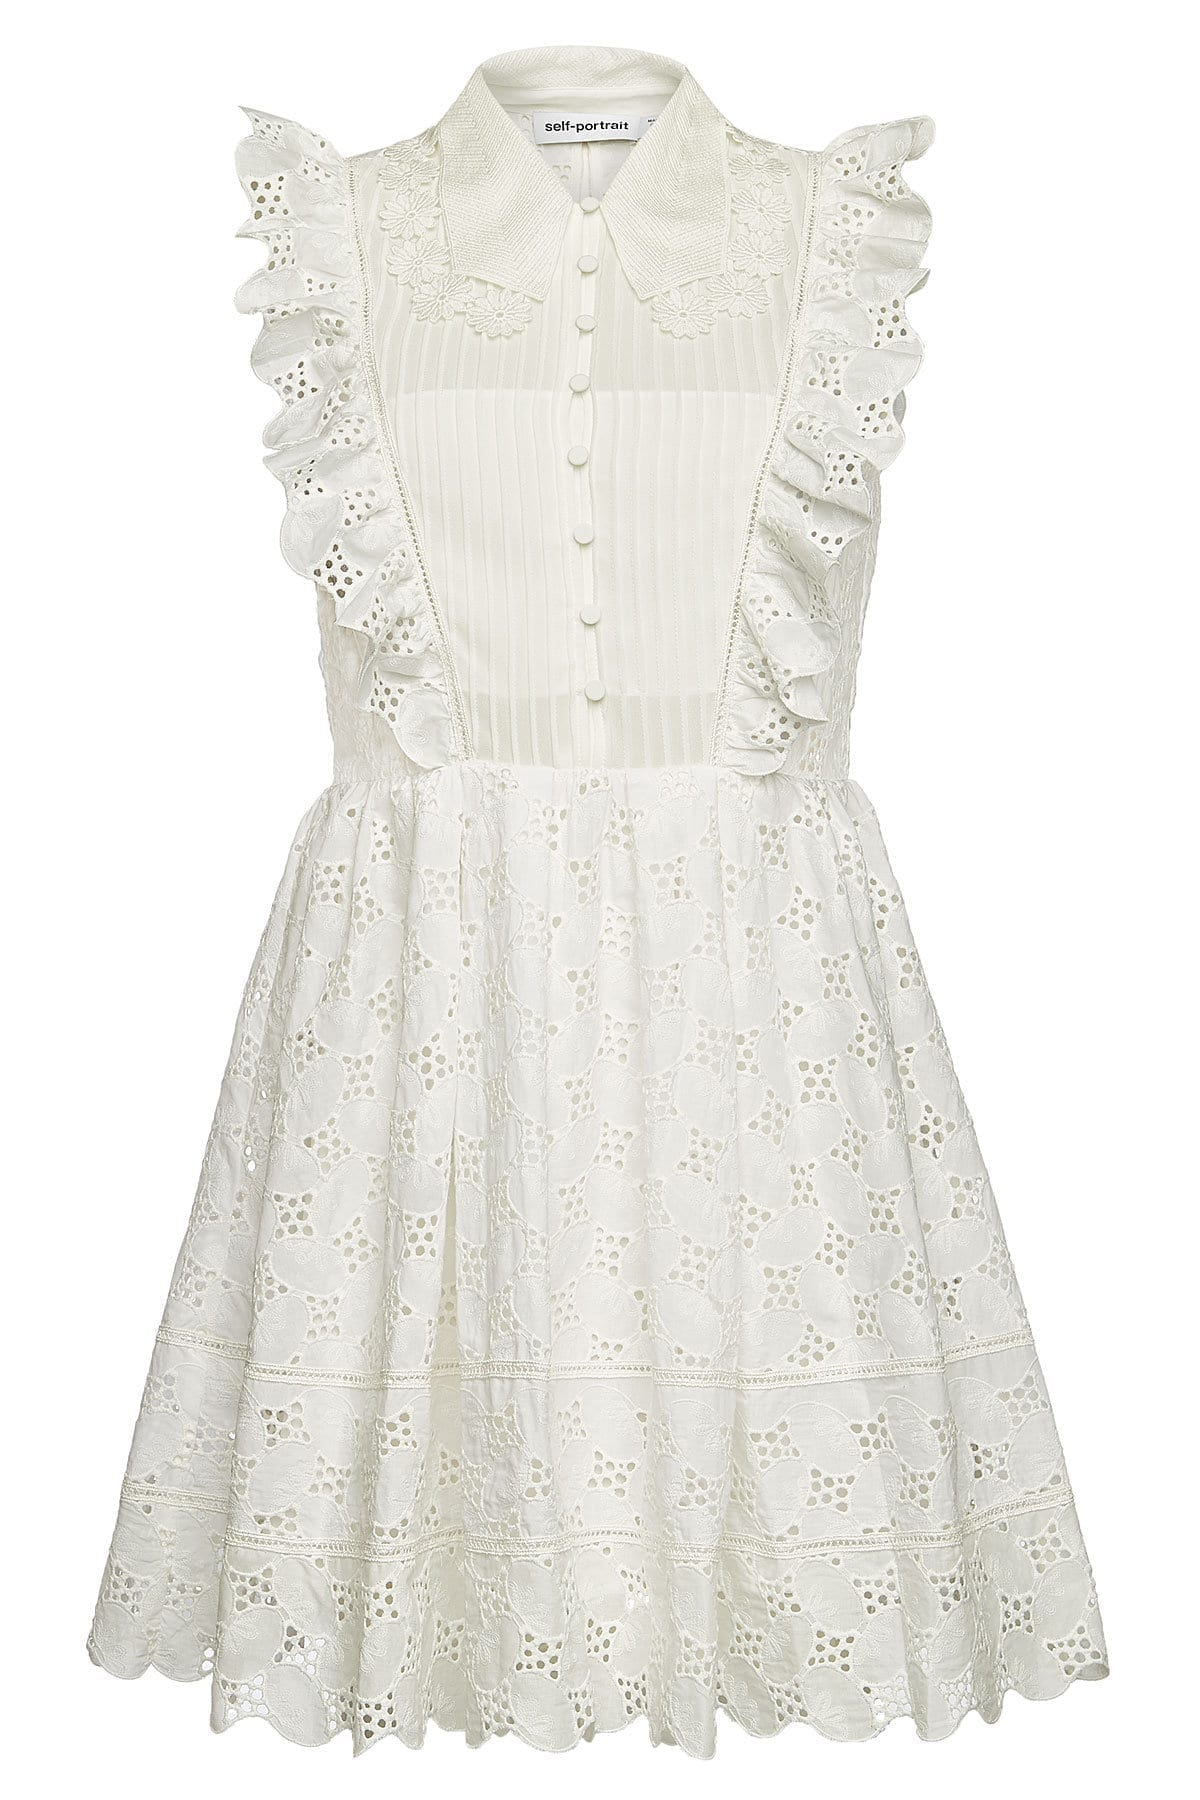 SELF-PORTRAIT Broderie Anglaise Cotton Mini White Dress